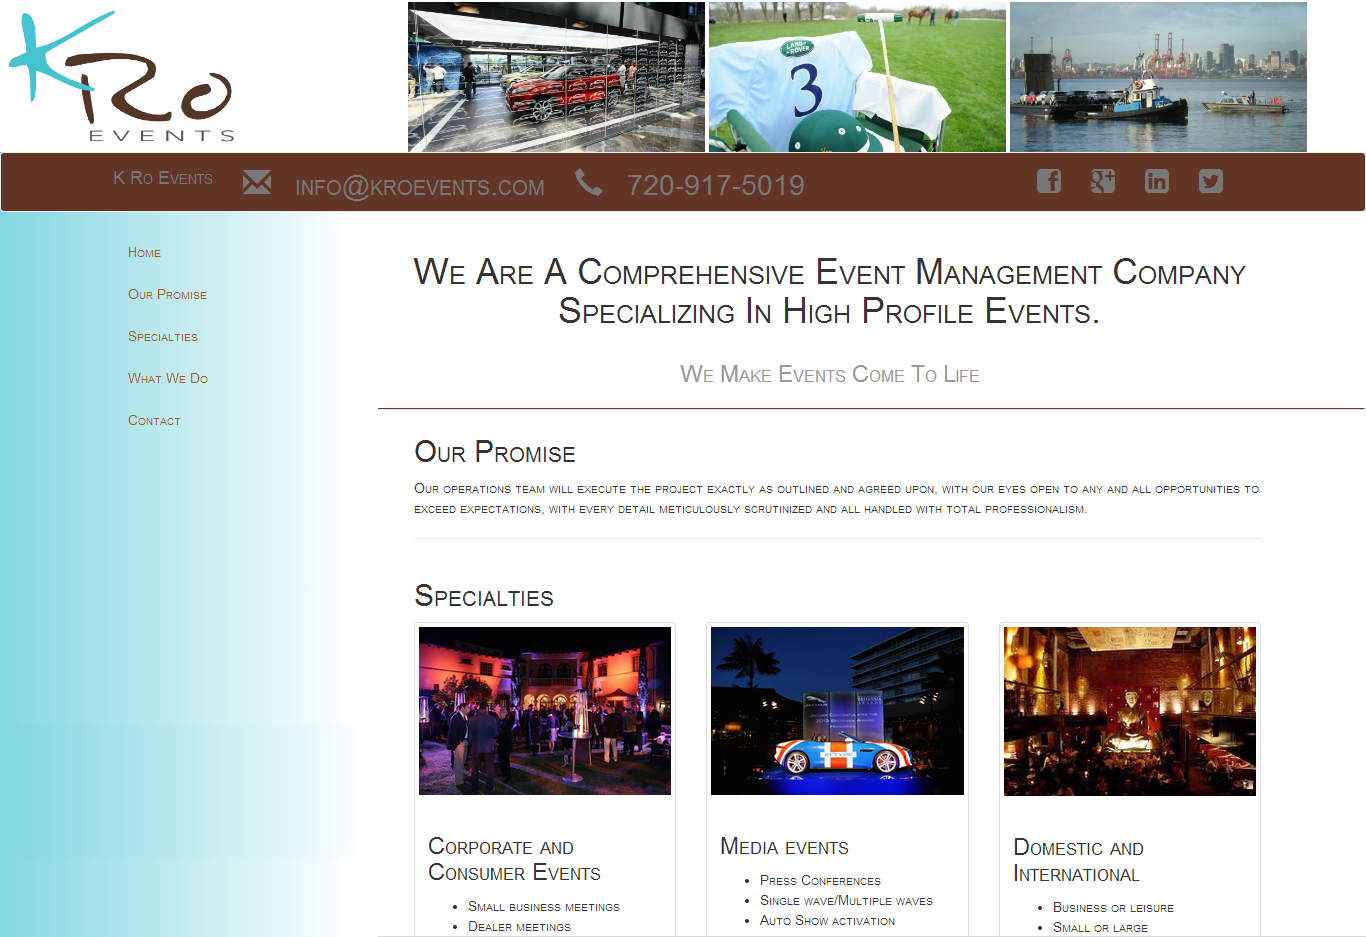 K Ro Events Website Screenshot